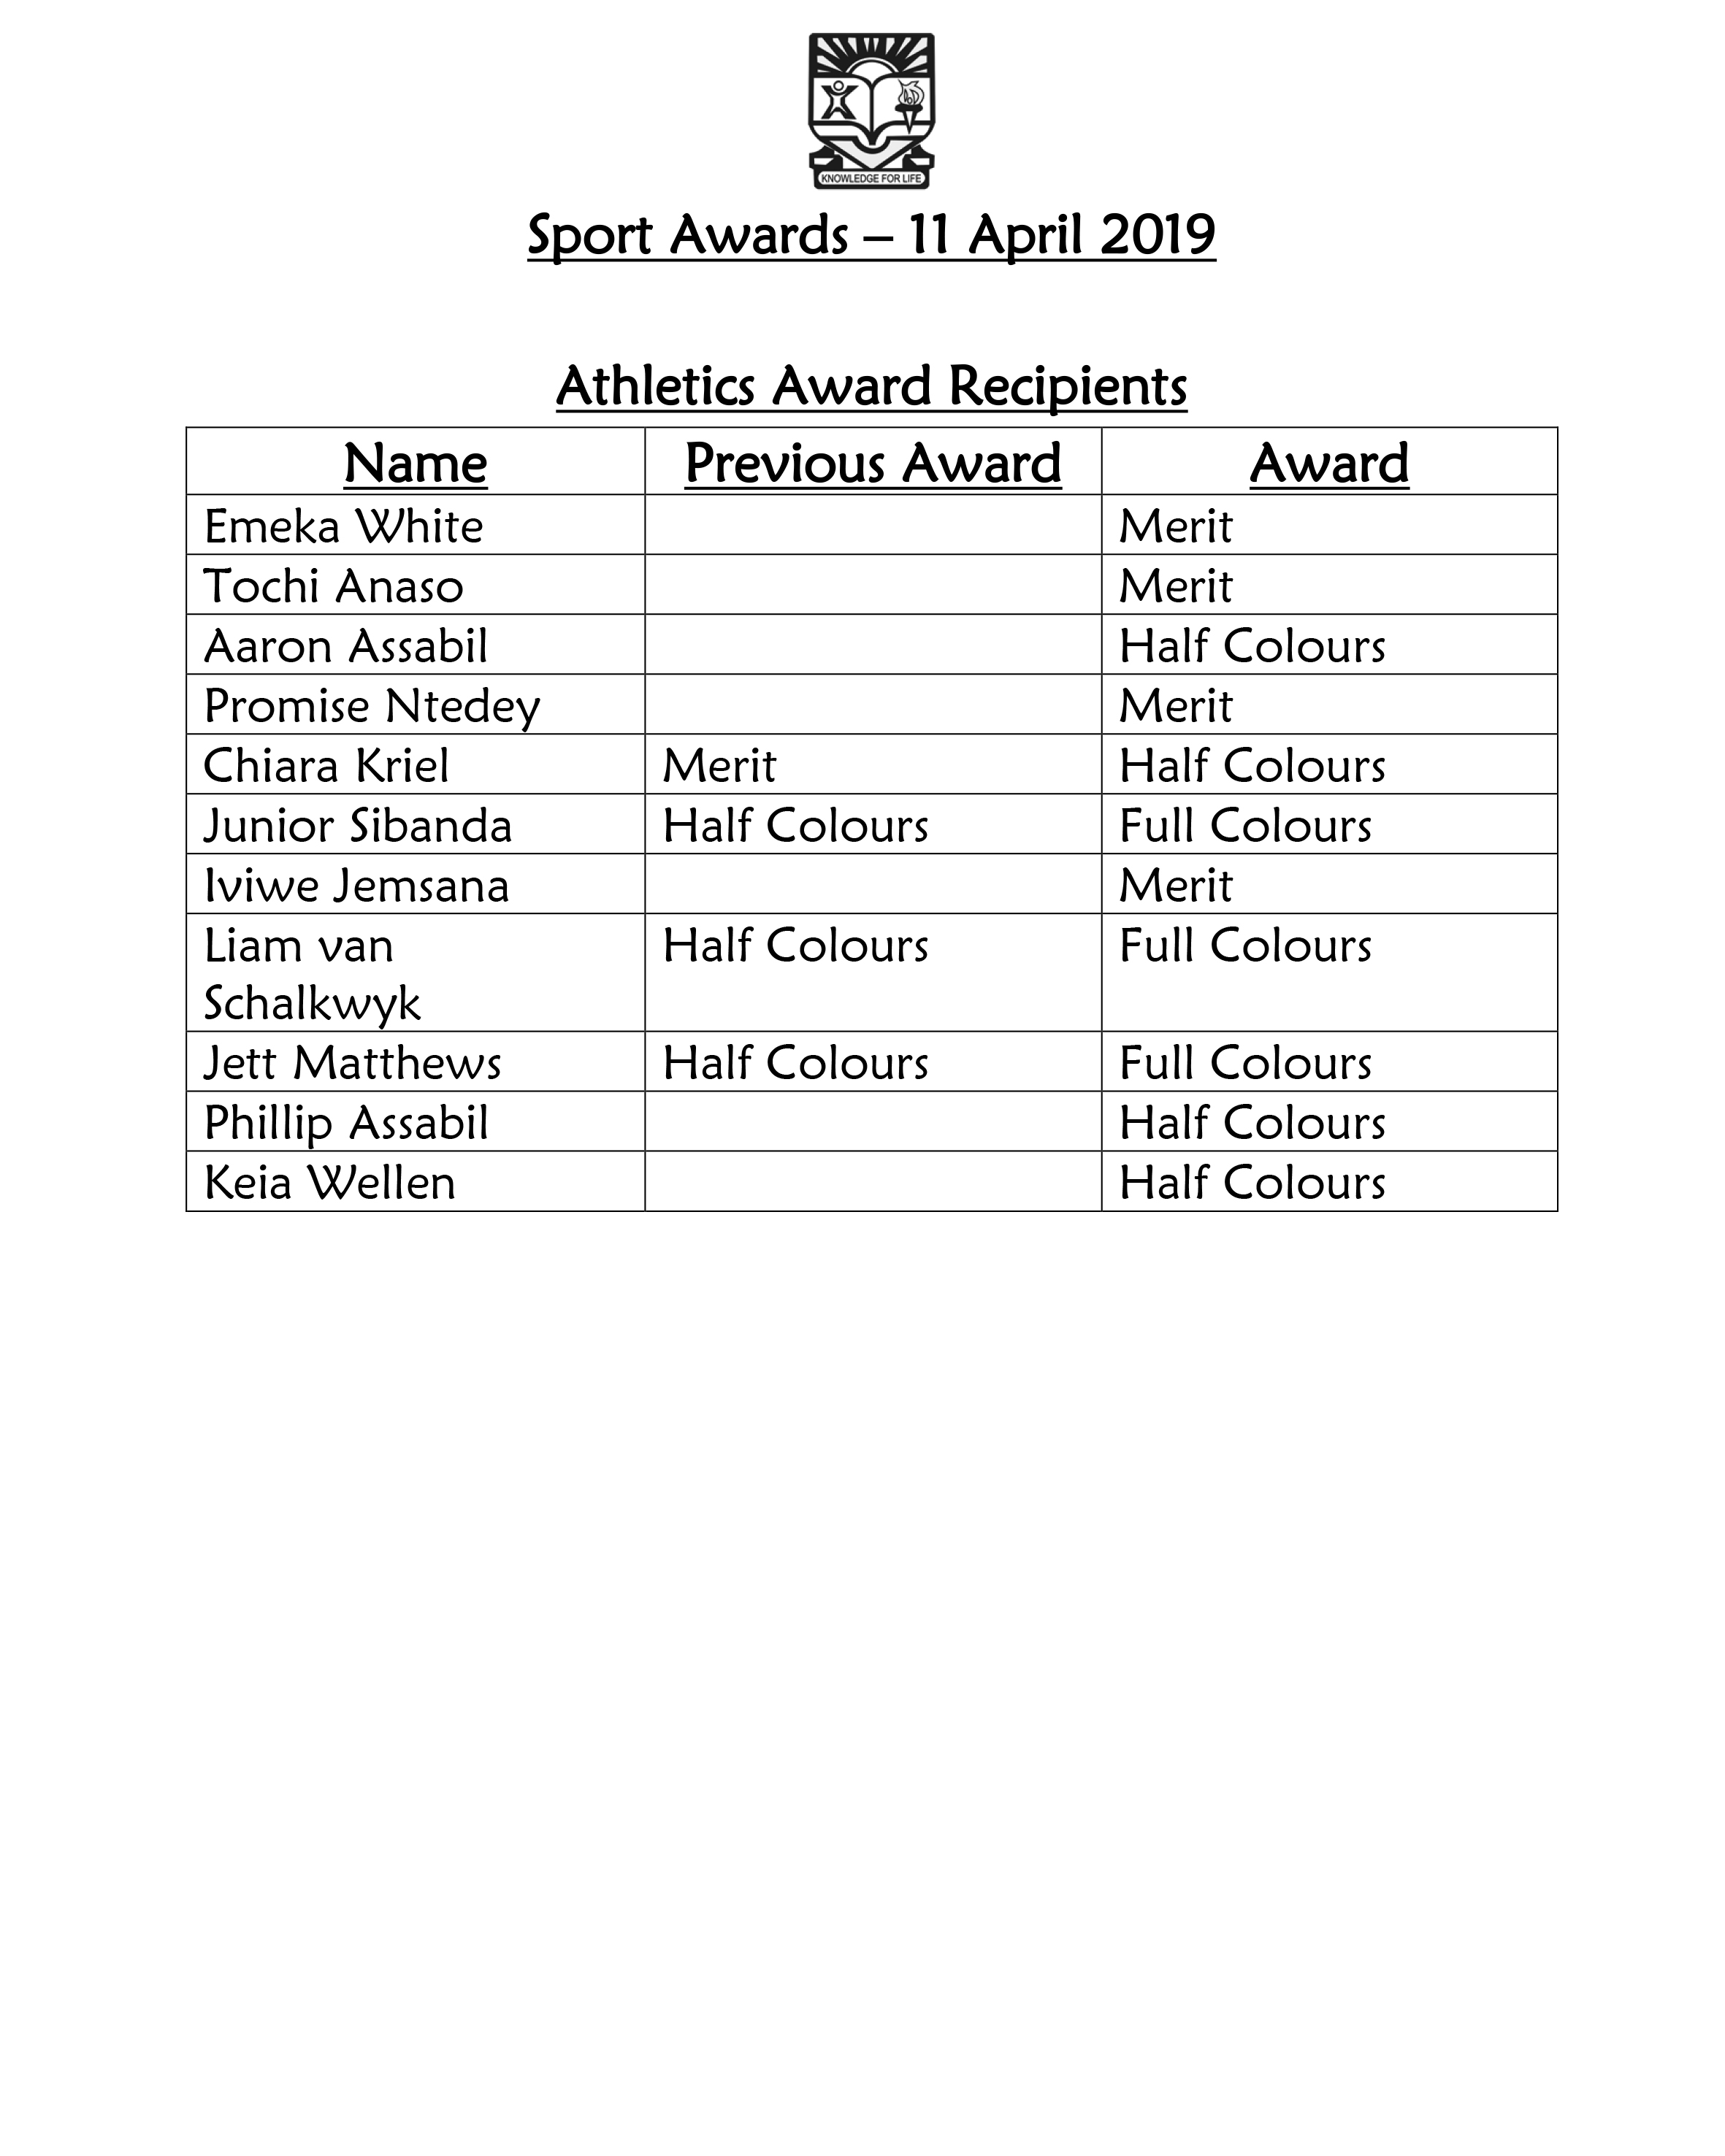 AWARDS ASSEMBLY LIST - 11 APRIL 2019 (1)